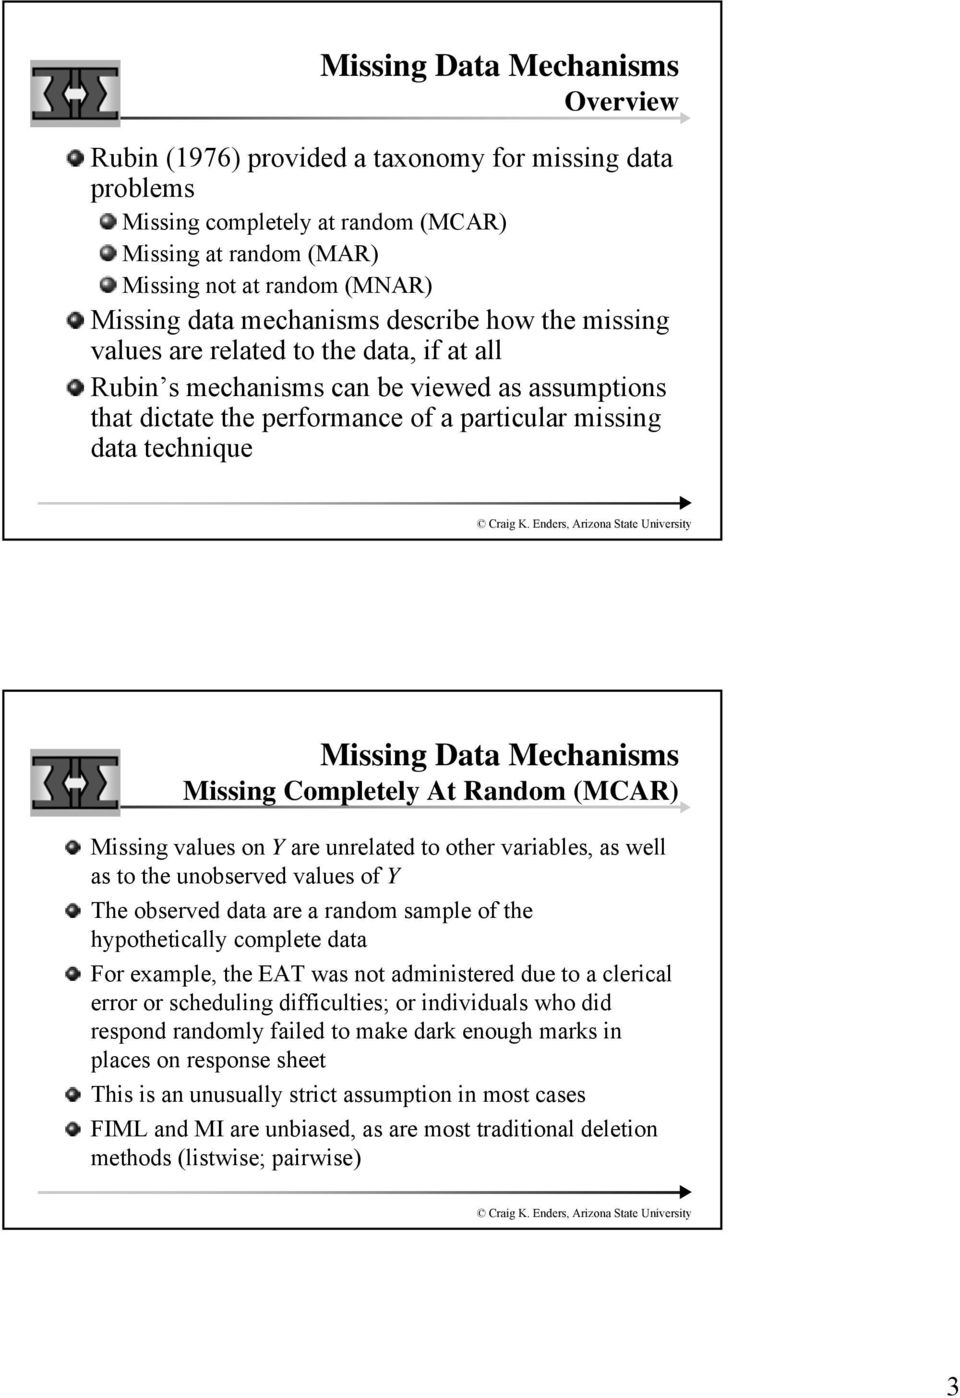 Missing Data Mechanisms Missing Completely At Random (MCAR) Missing values on Y are unrelated to other variables, as well as to the unobserved values of Y The observed data are a random sample of the